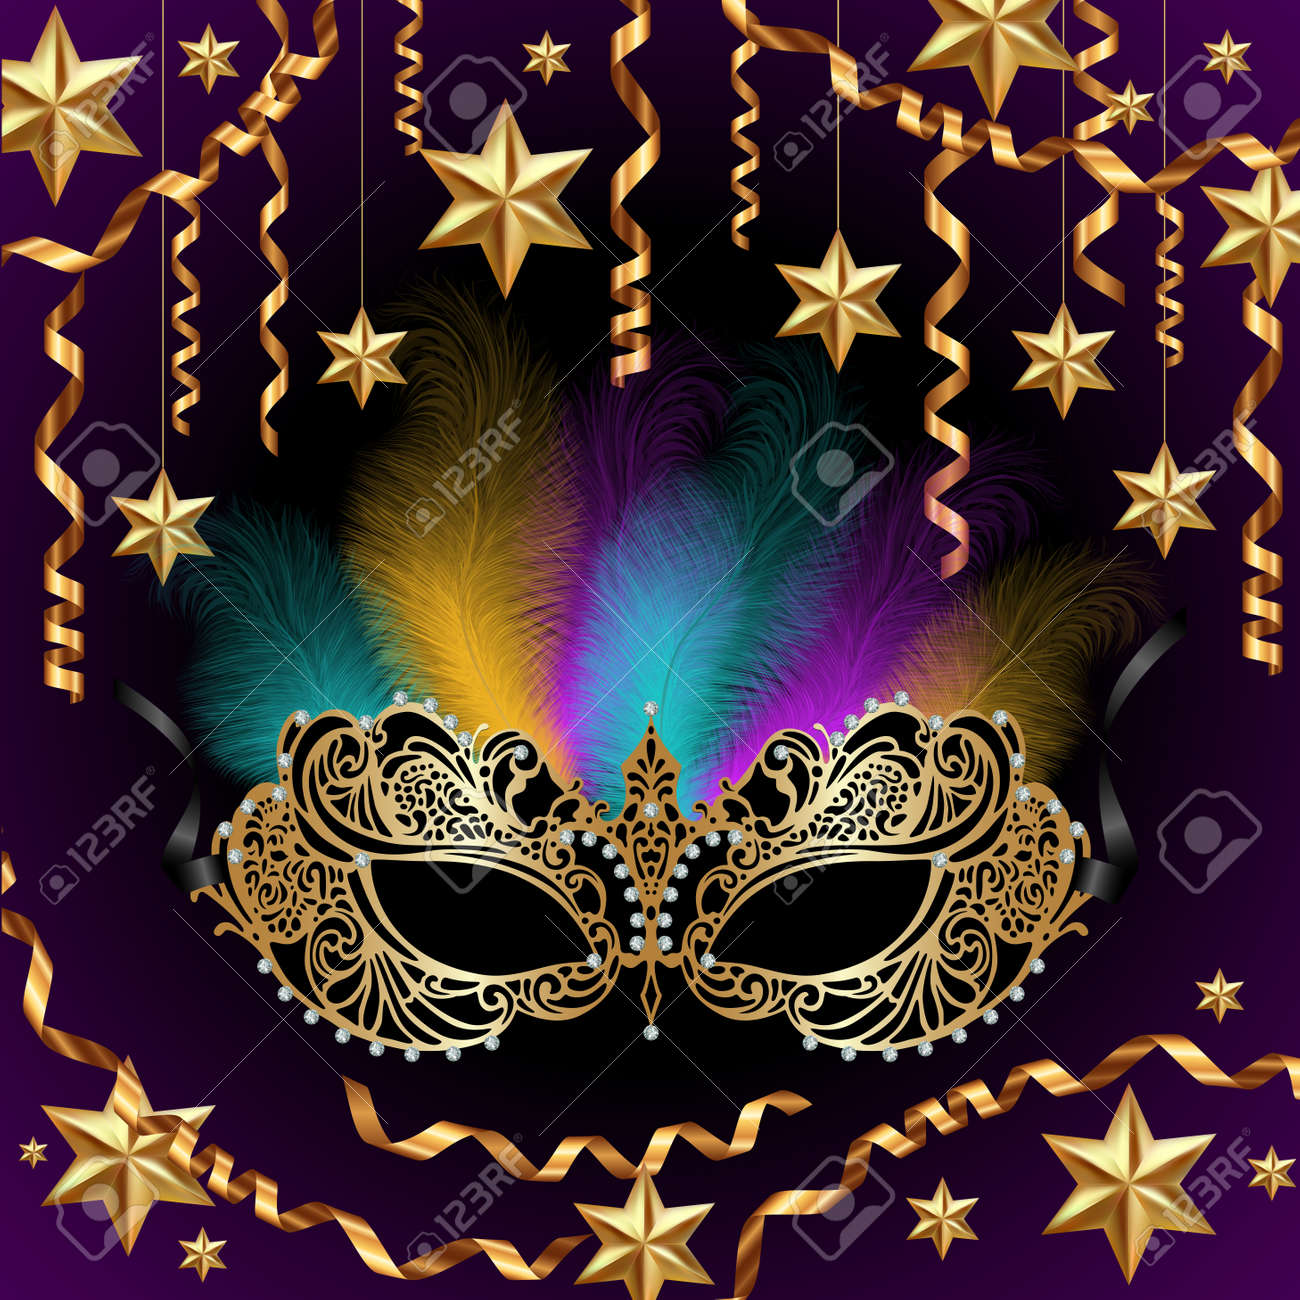 Illustration of card template with carnival mask, feathers, golden stars and streamers - 169179333